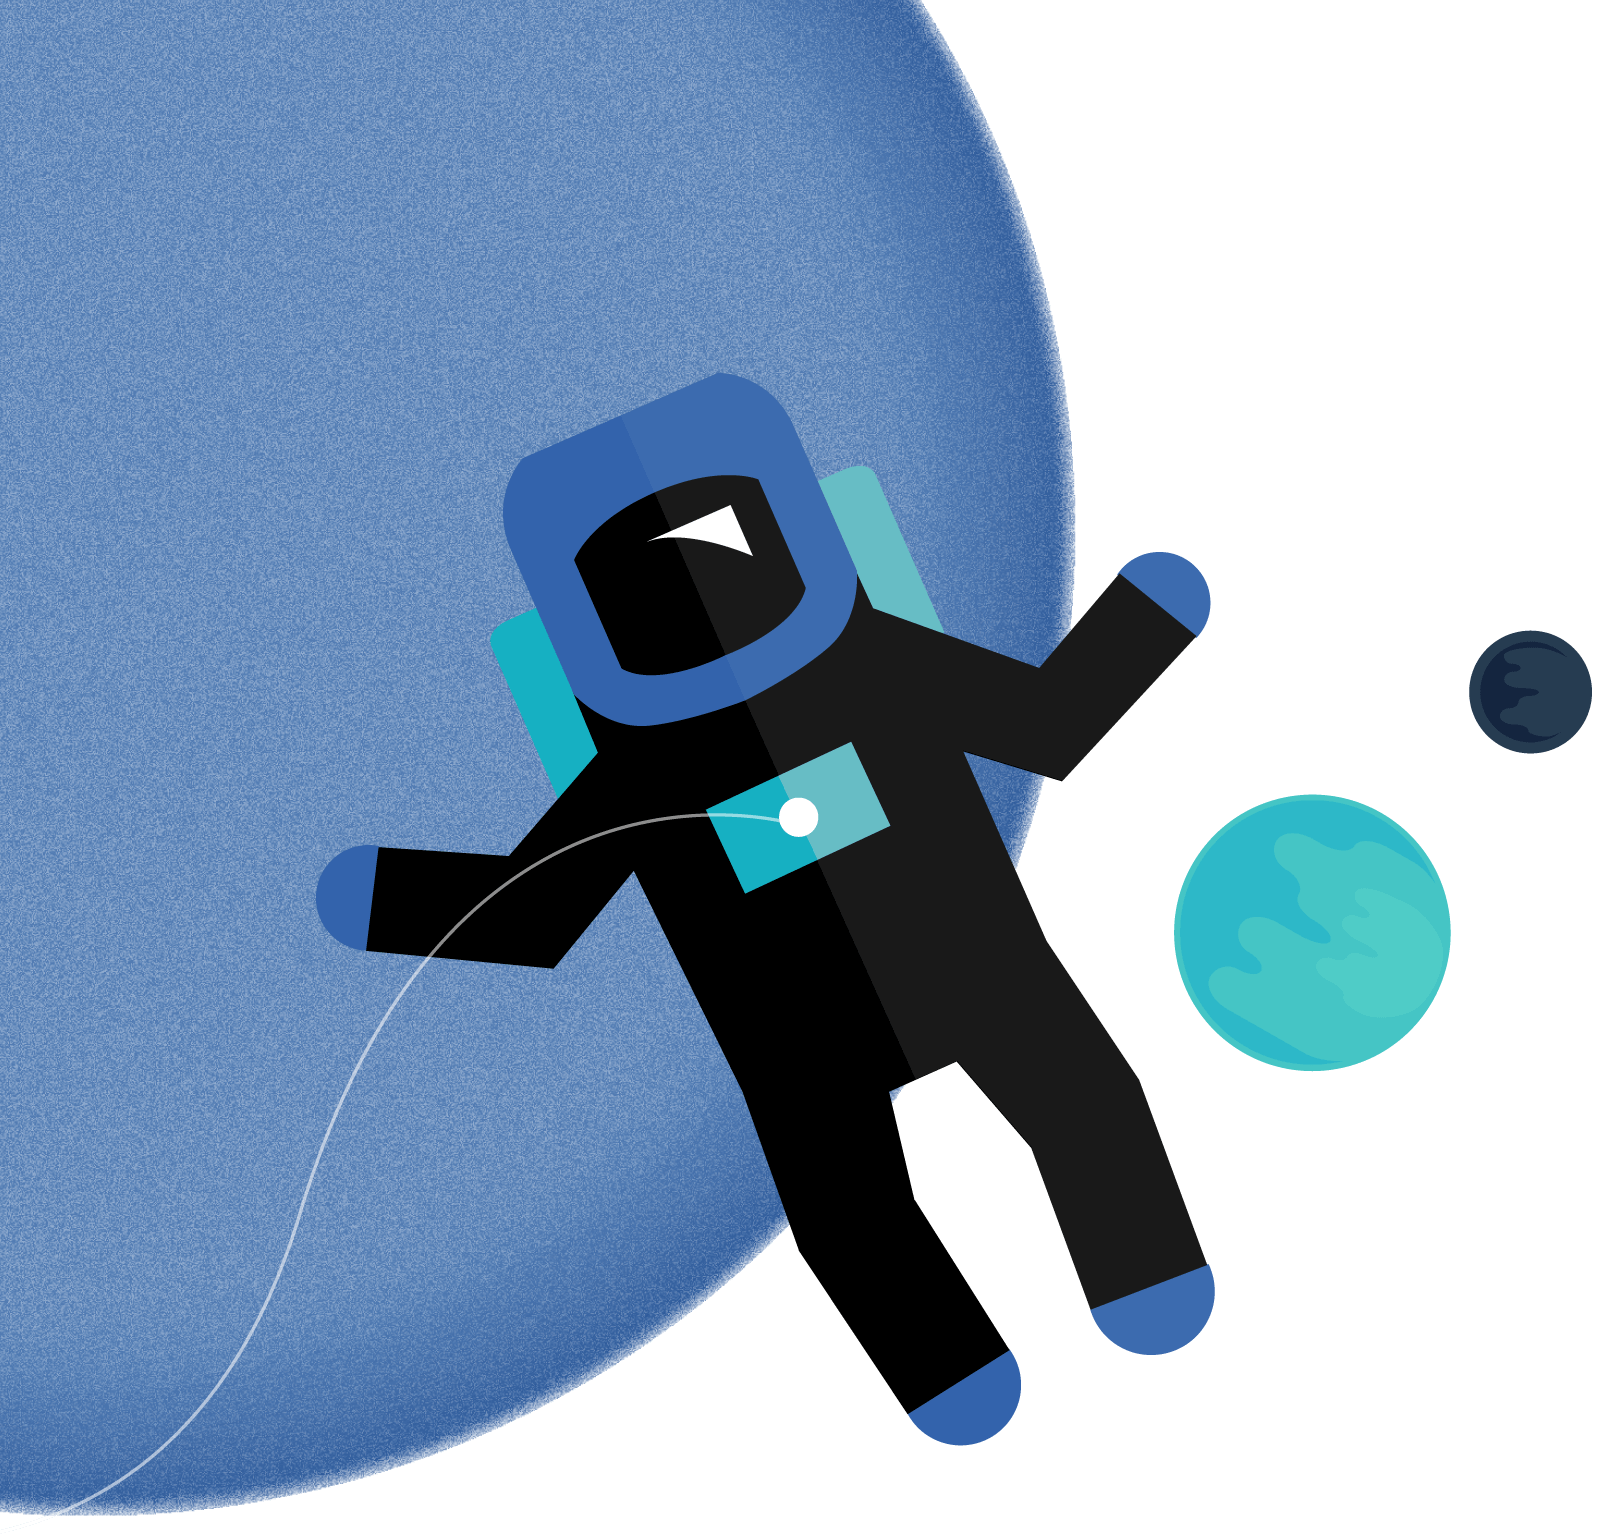 Astronaut-with-moon-left